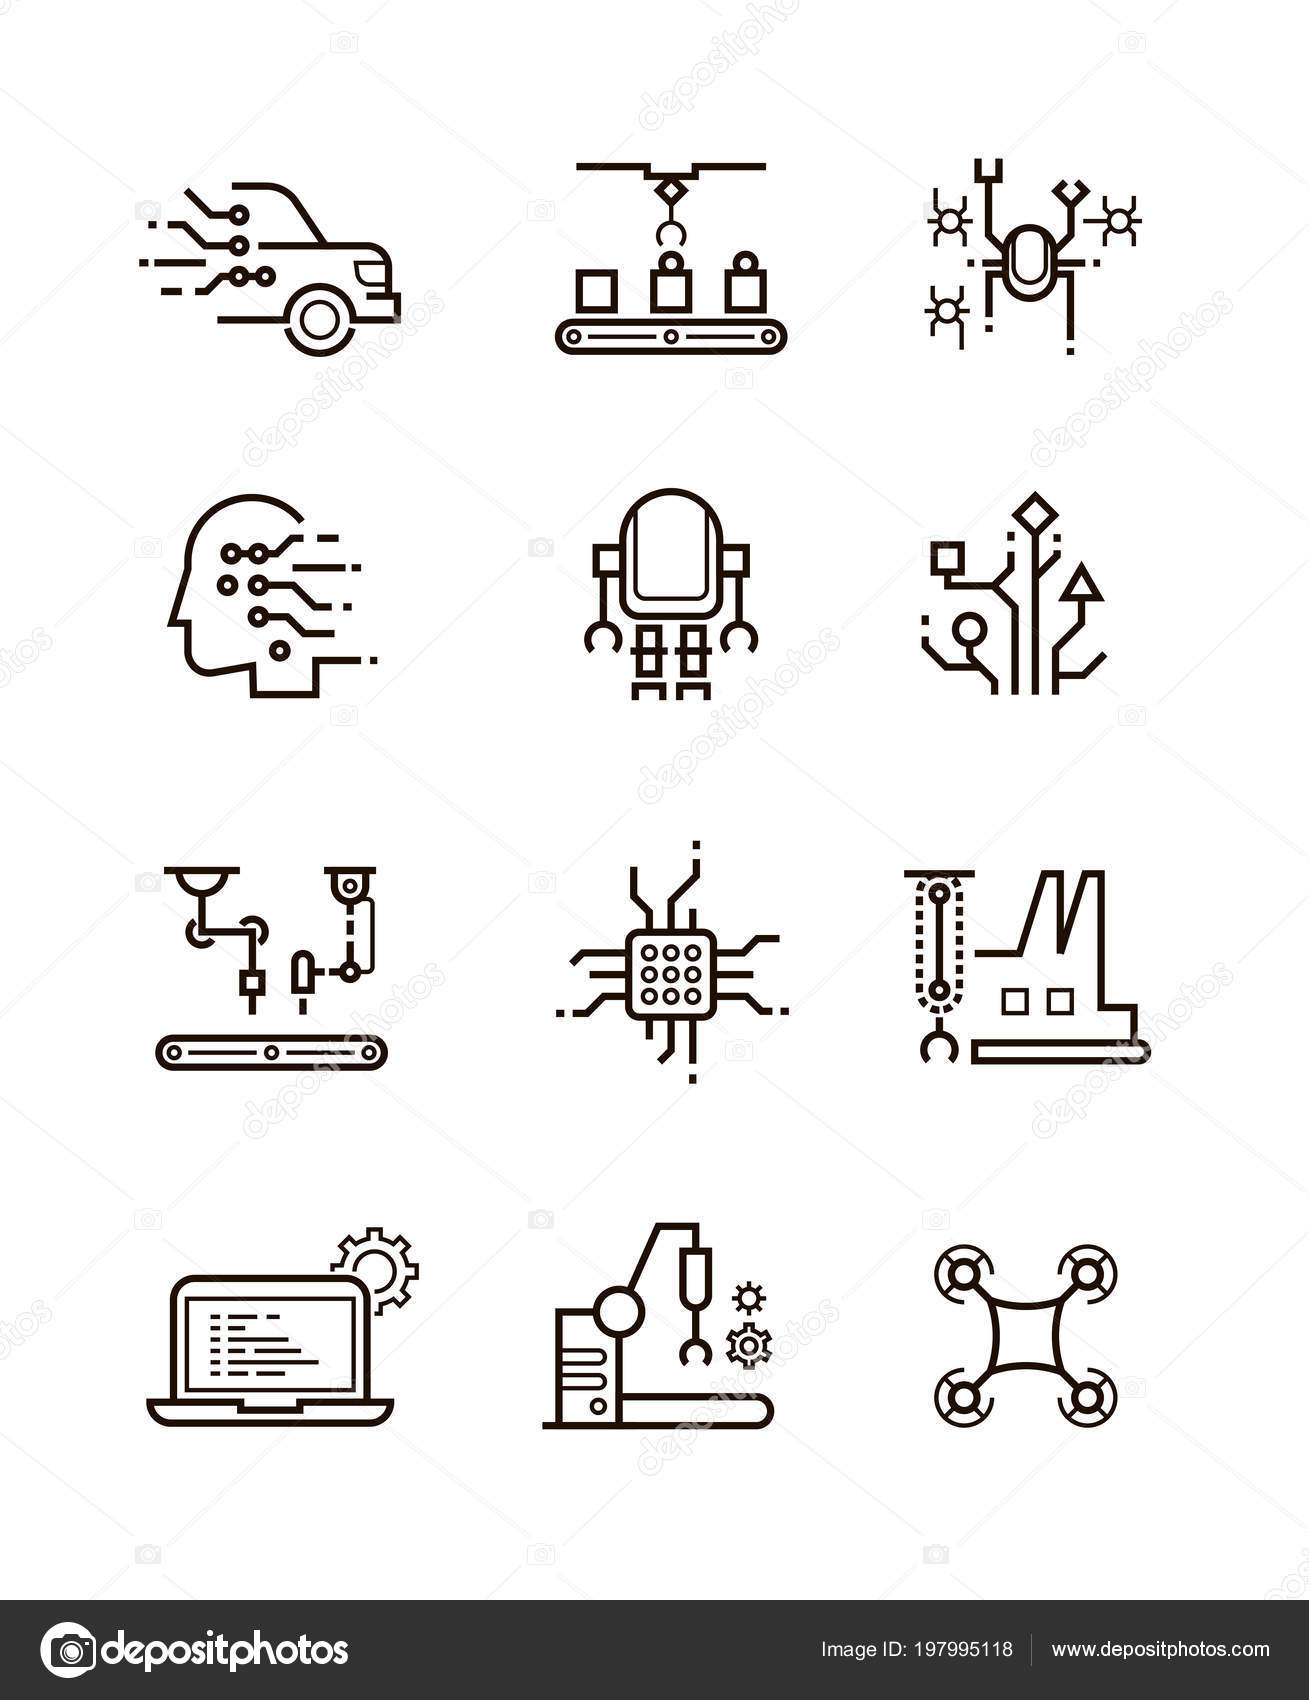 Robot Technology And Robotic Machinery Line Vector Icons Artificial